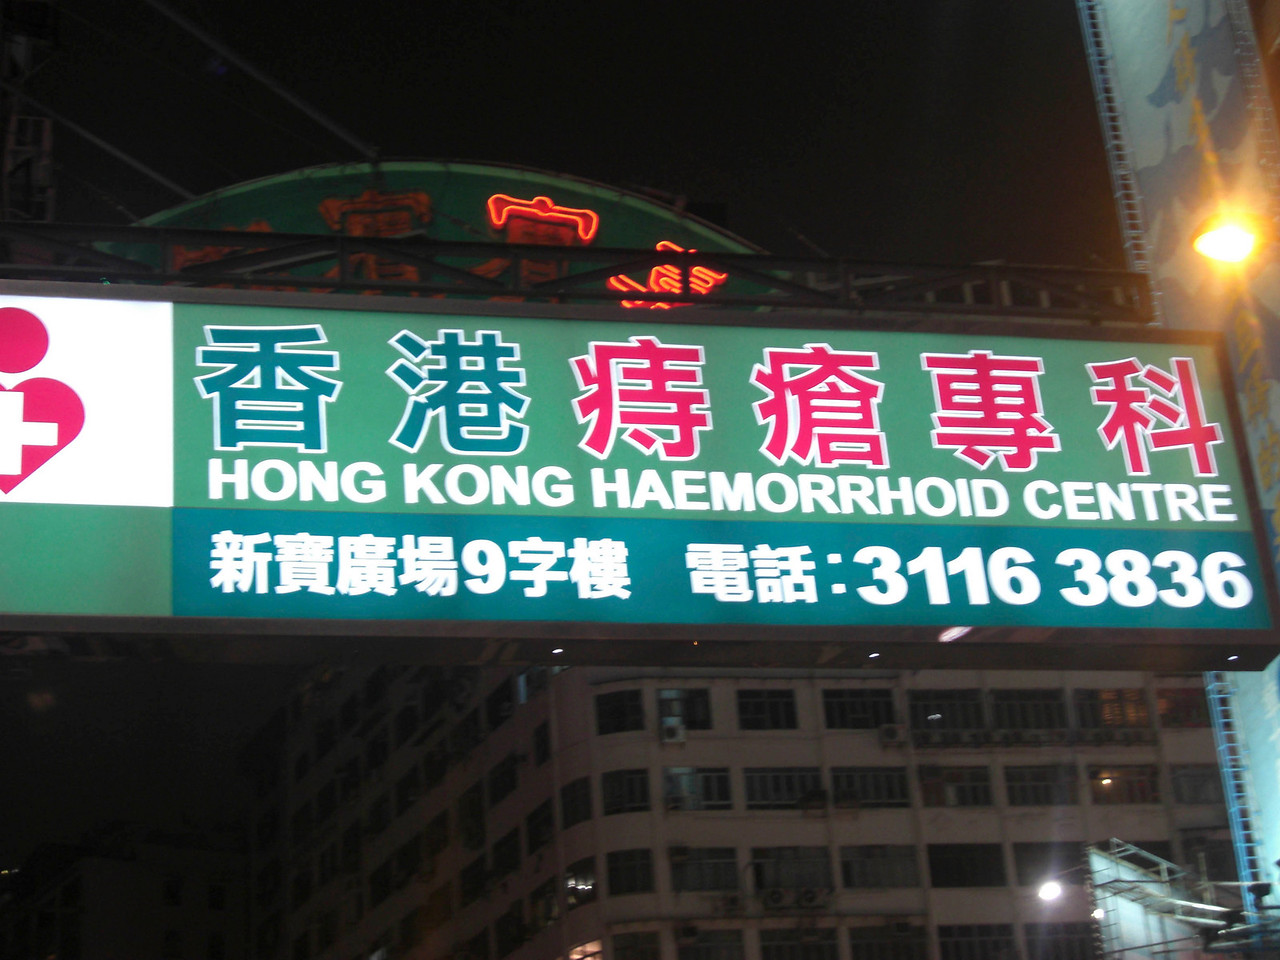 This just makes me laugh, Hong Kong